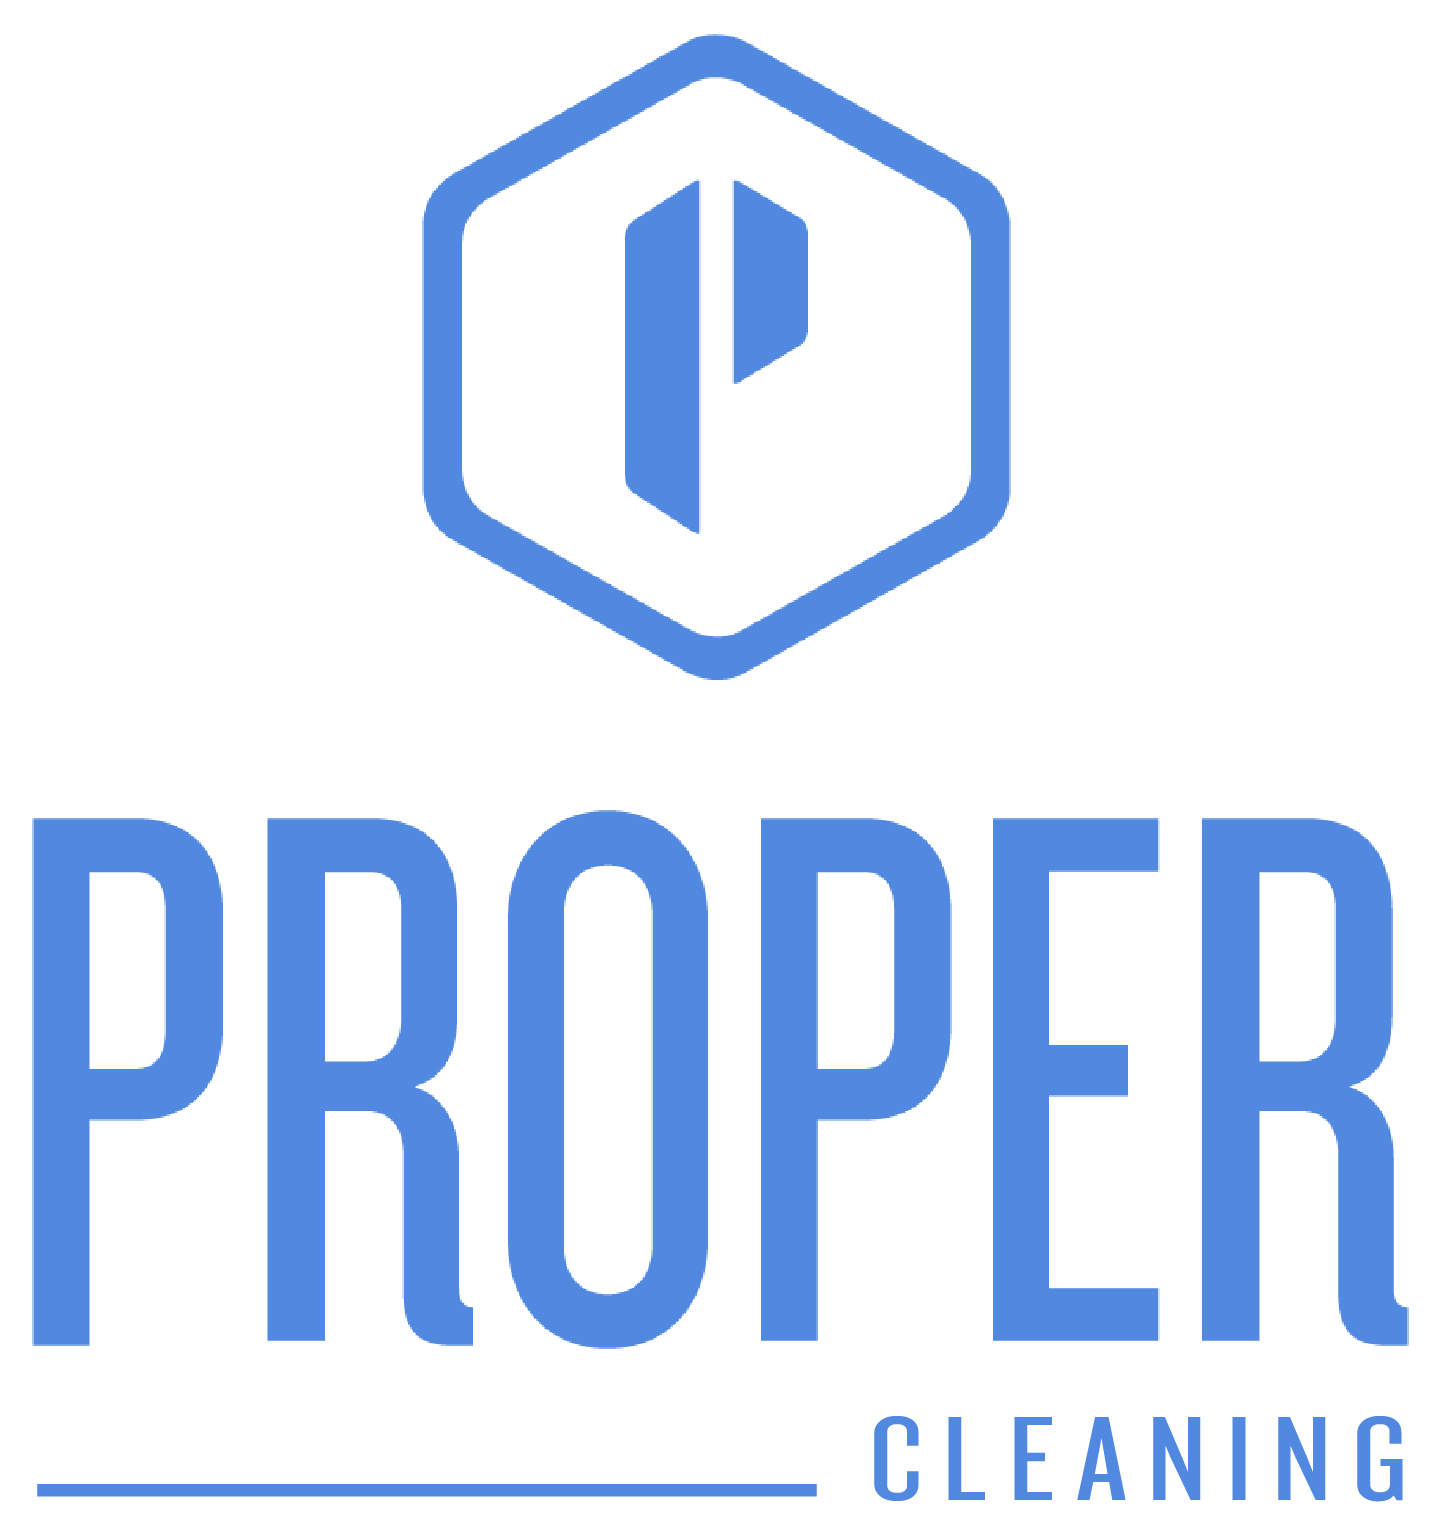 PROPER CLEANING